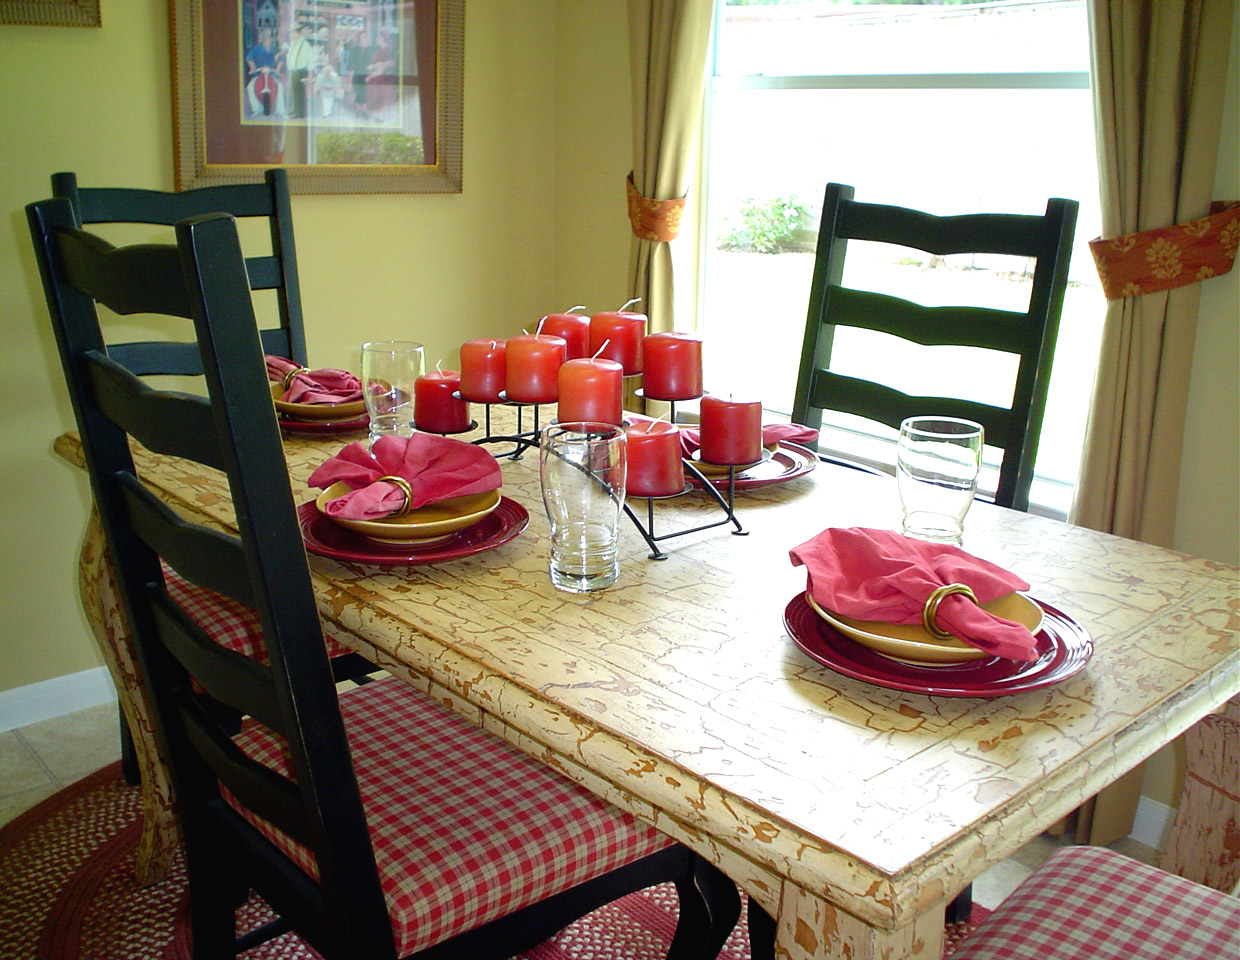 how to refinish wood chairs wedding reception without chair covers refinishing furniture learn